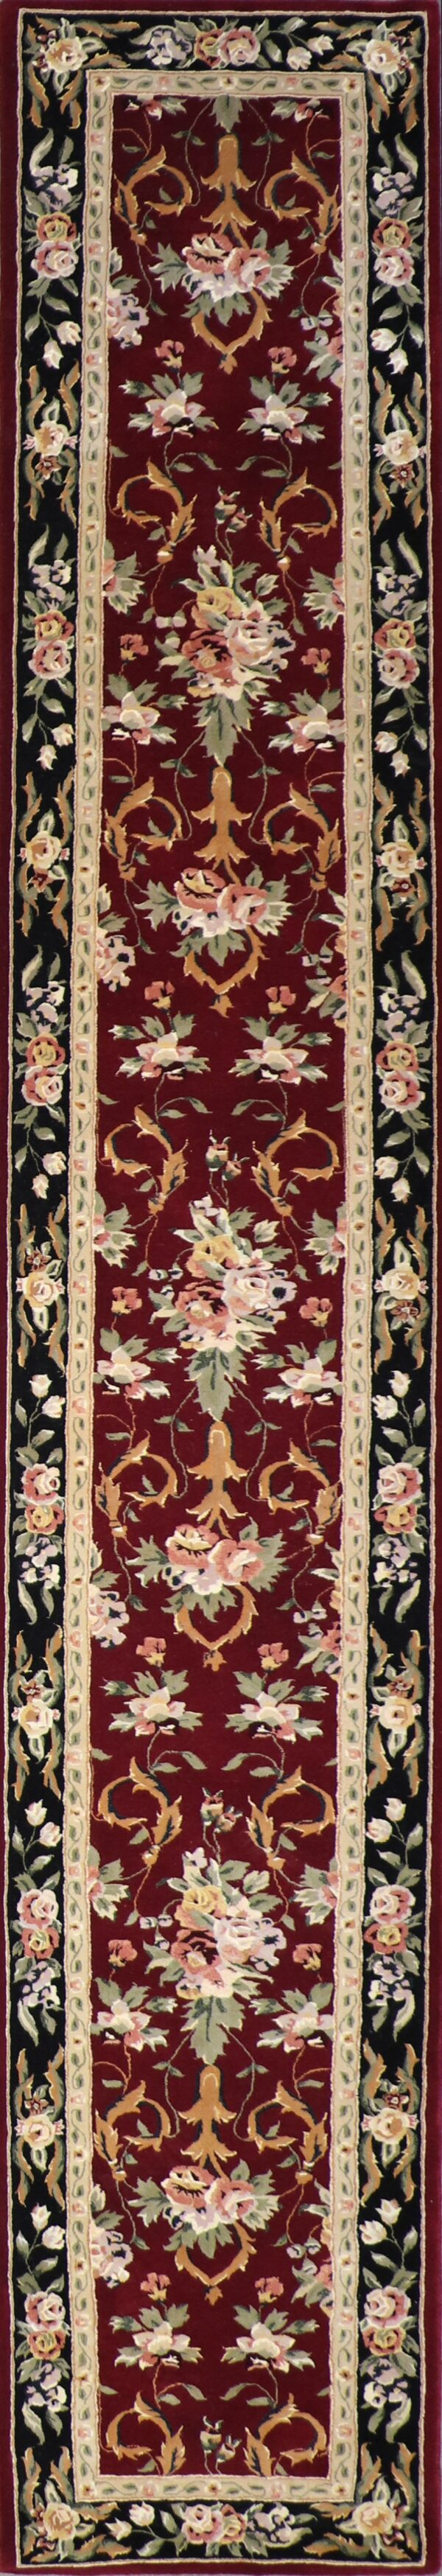 """2'6""""x16' Traditional Tabriz Wool Hand-Tufted Rug - Direct Rug Import 